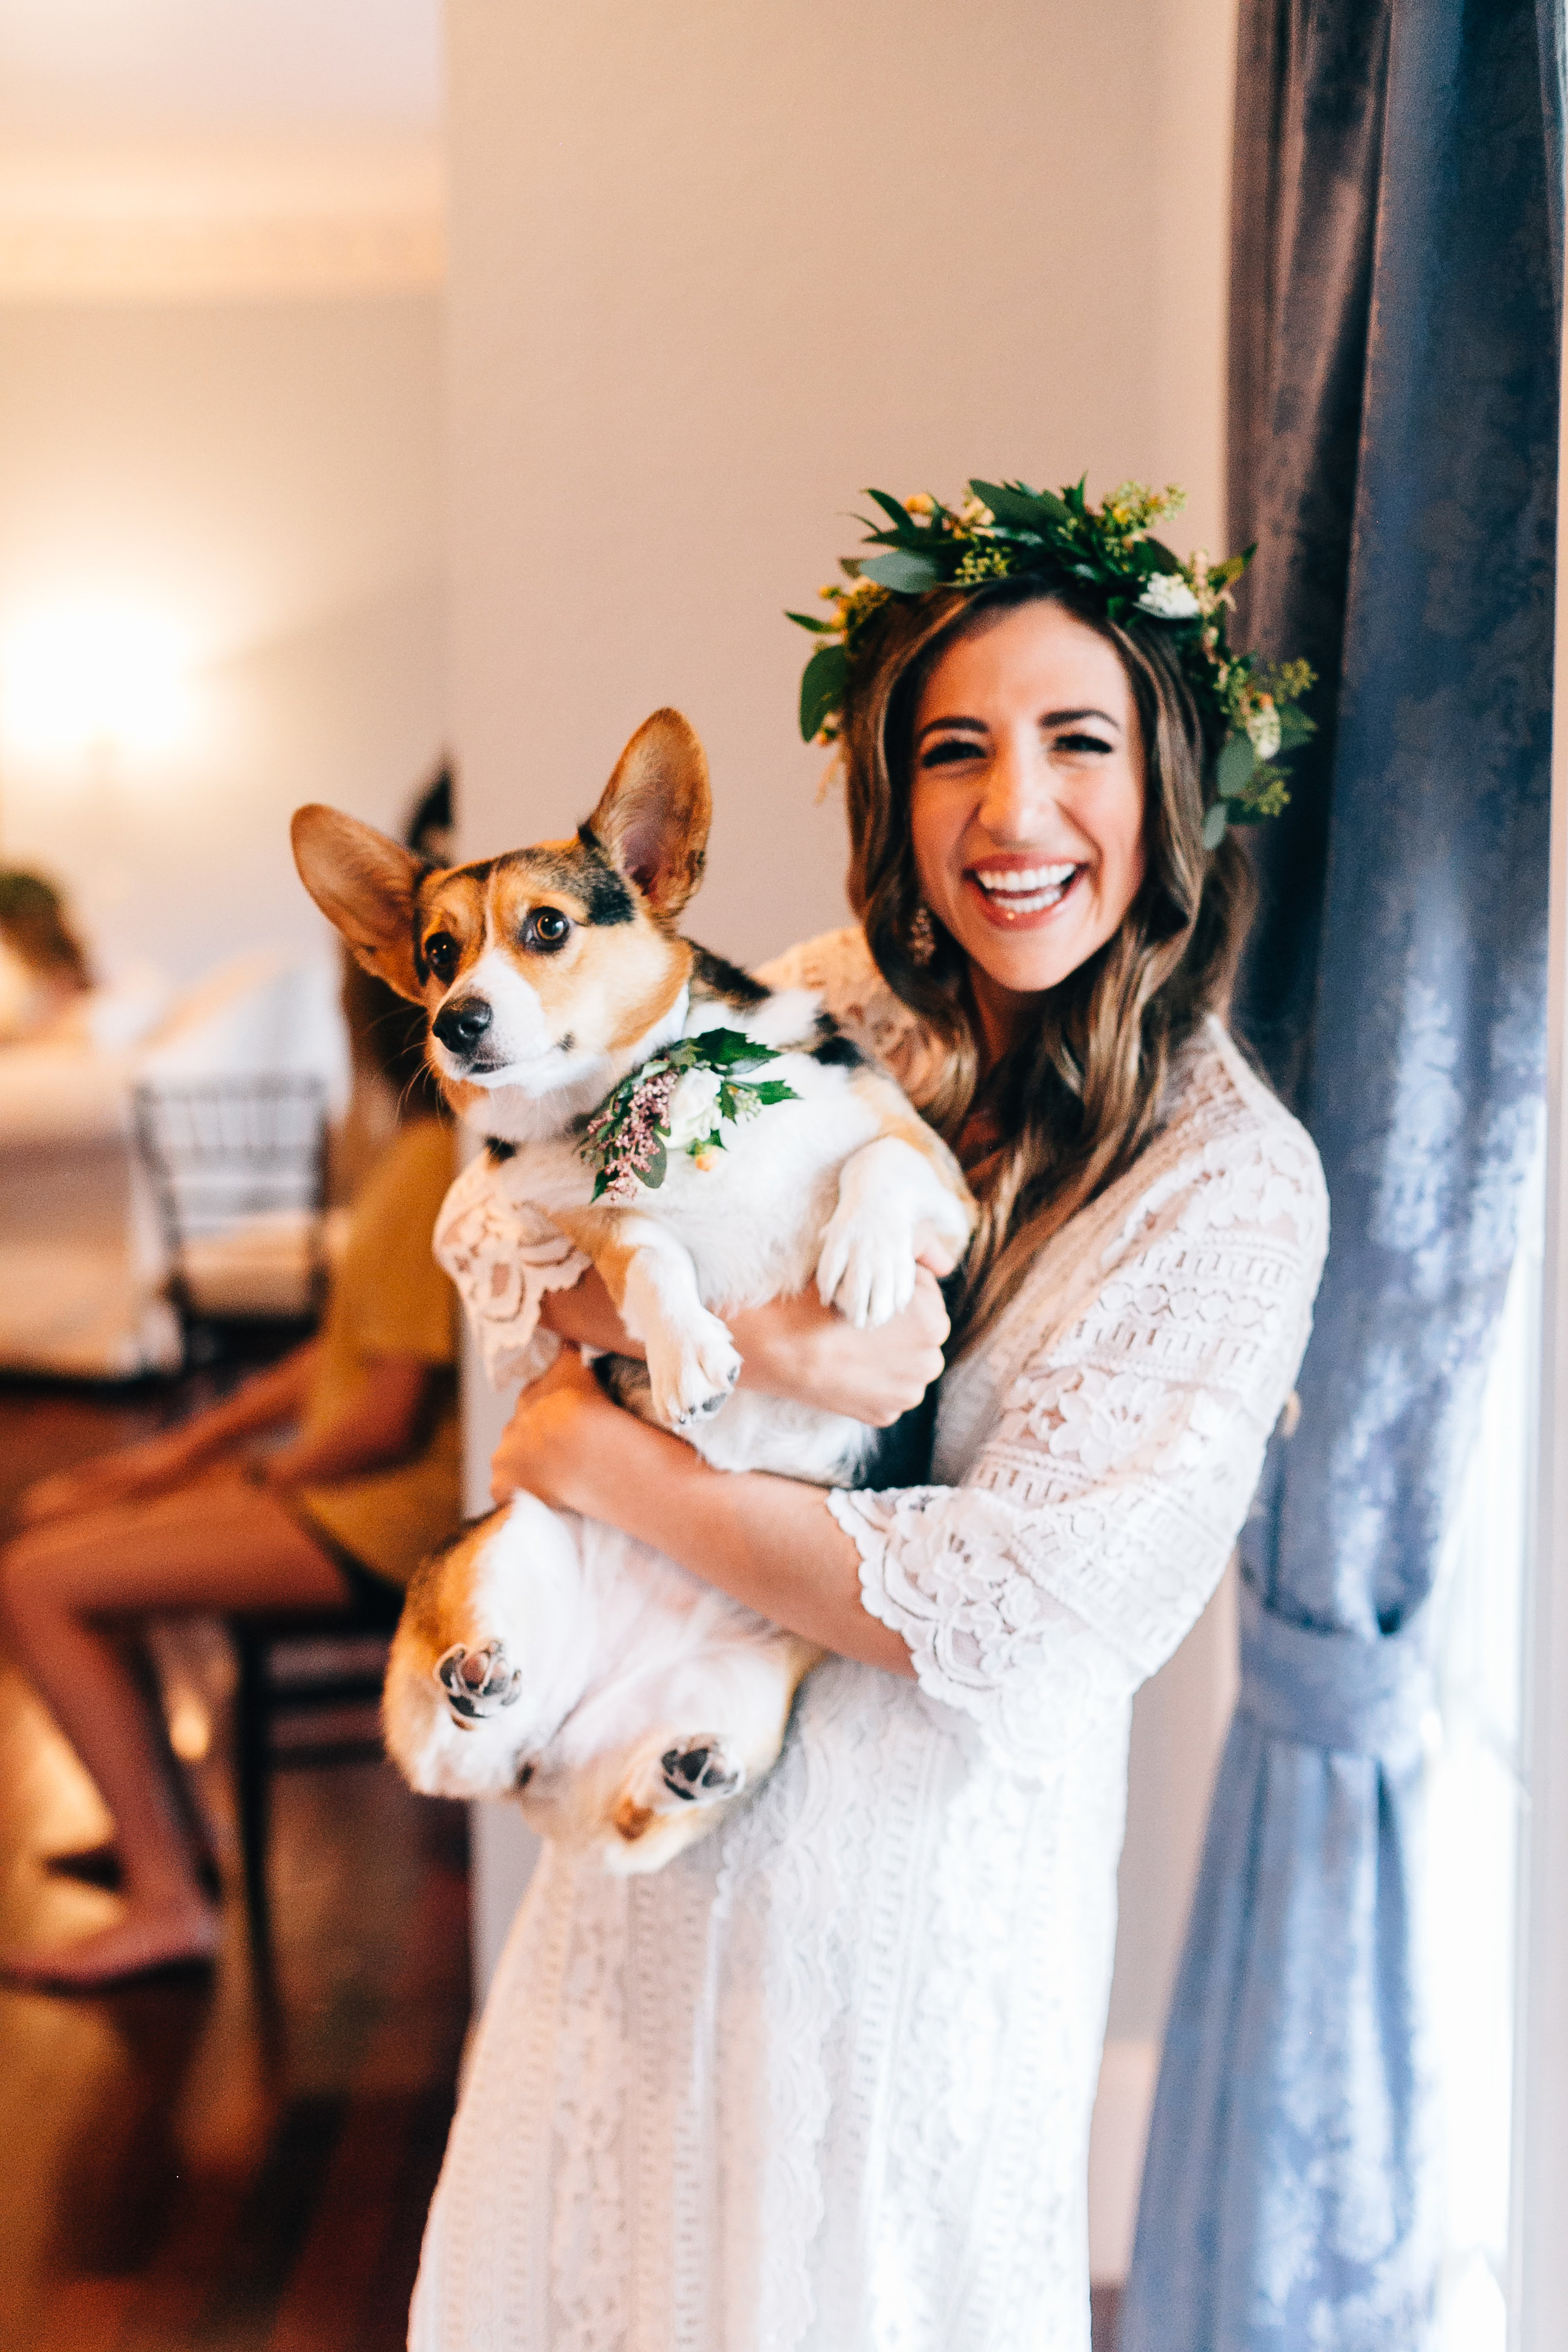 Bride getting ready with her adorable dog, Charli the Corgi!